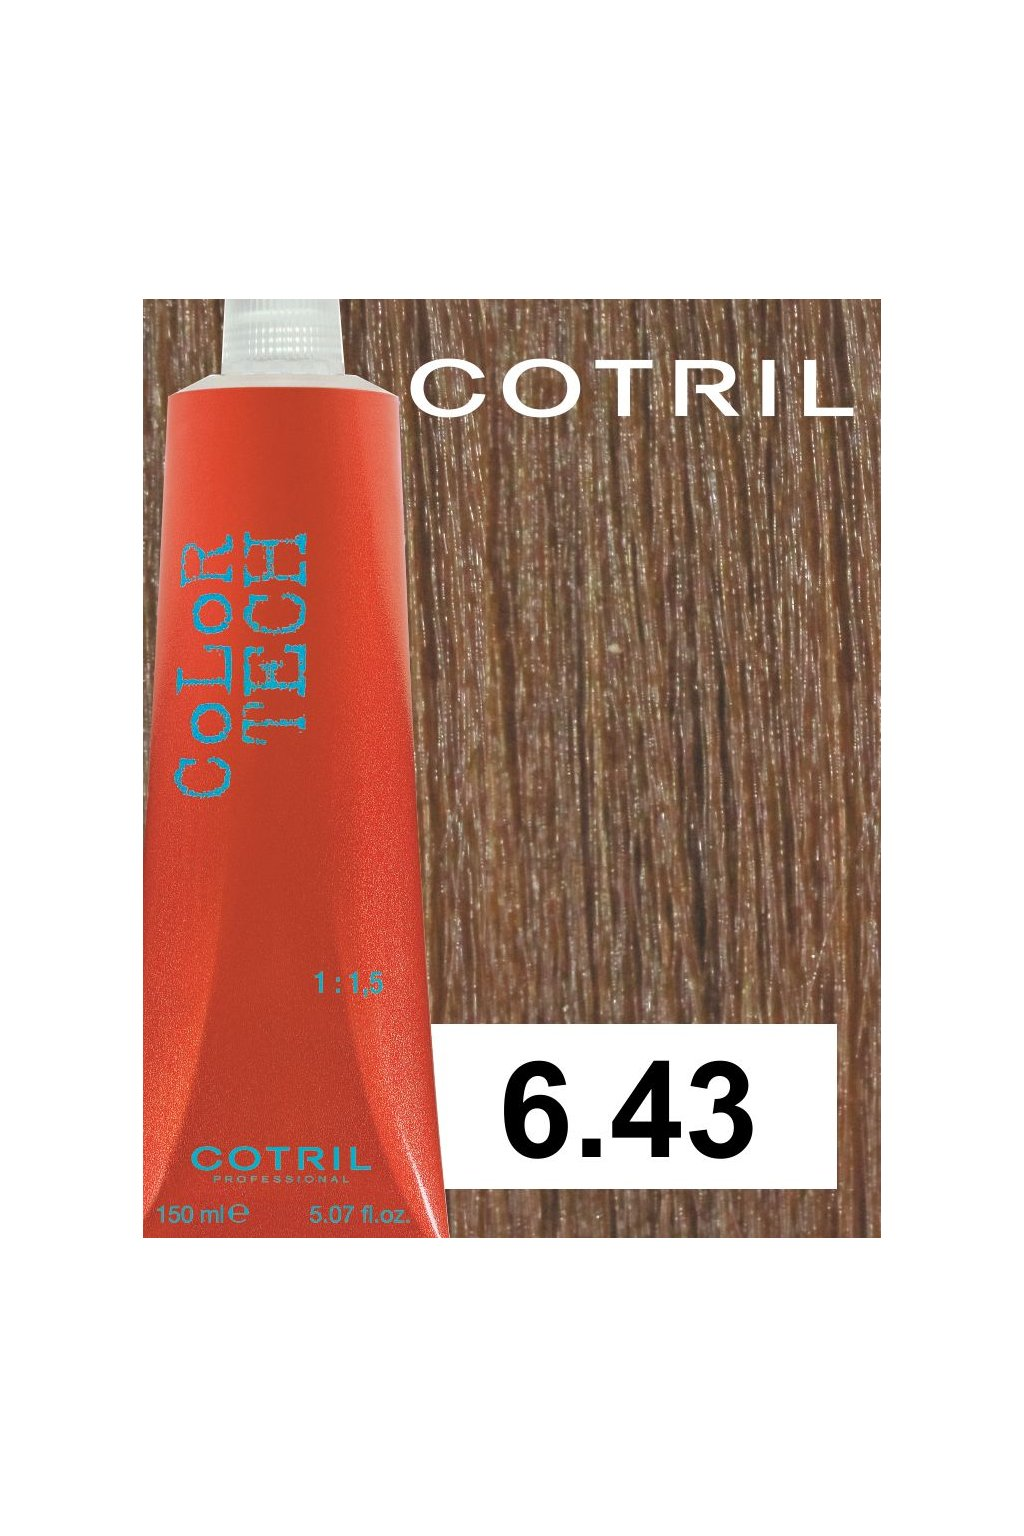 6 43 ct cotril